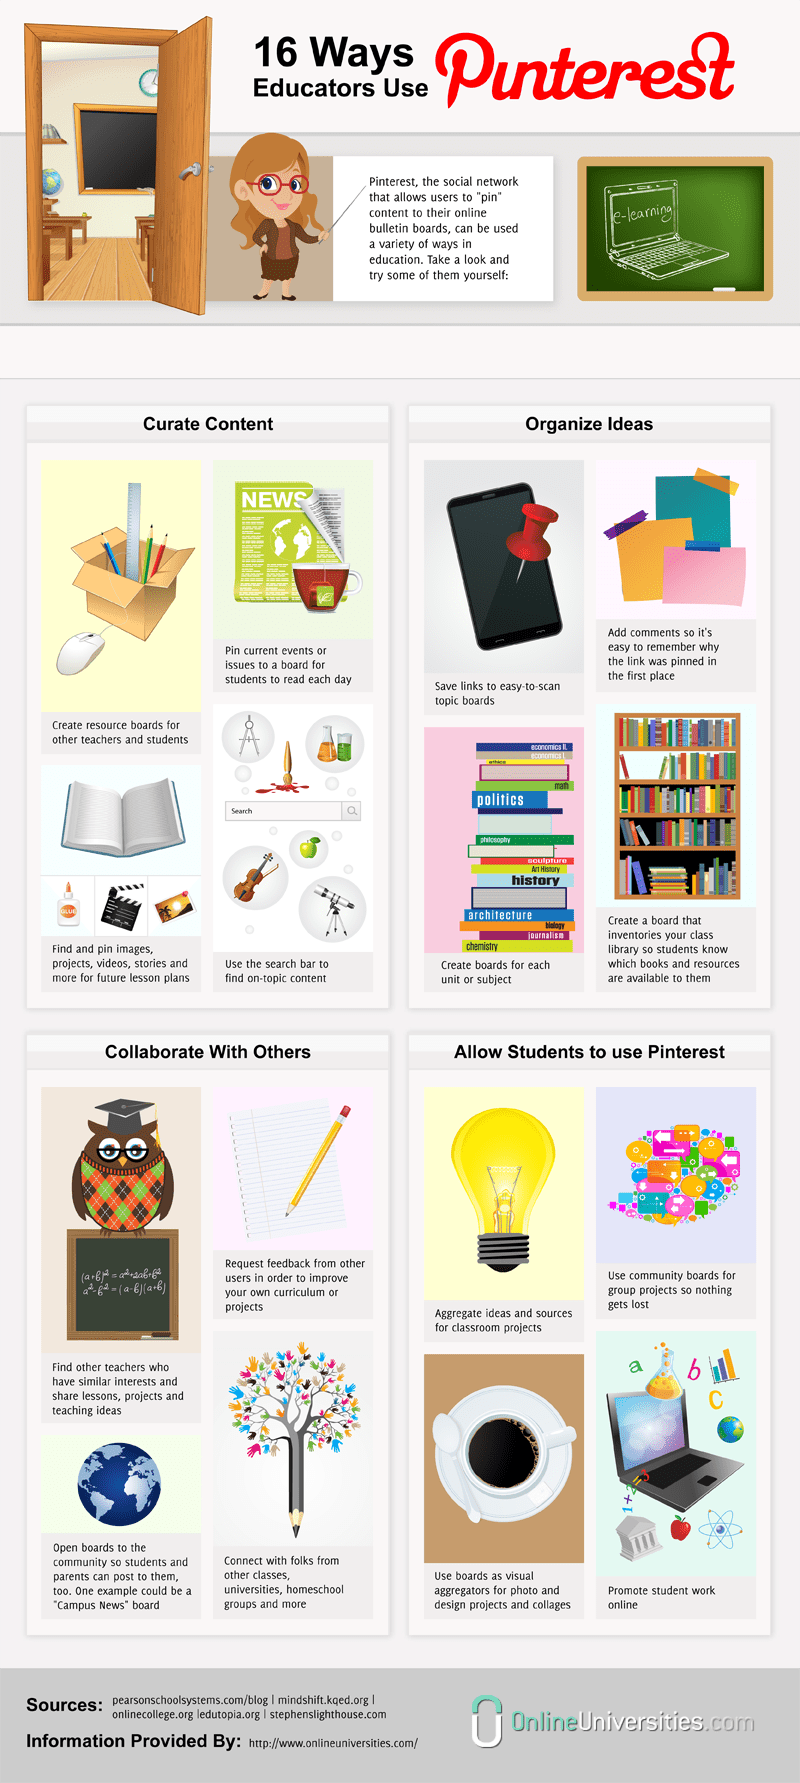 16 Ways Educators Use Pinterest